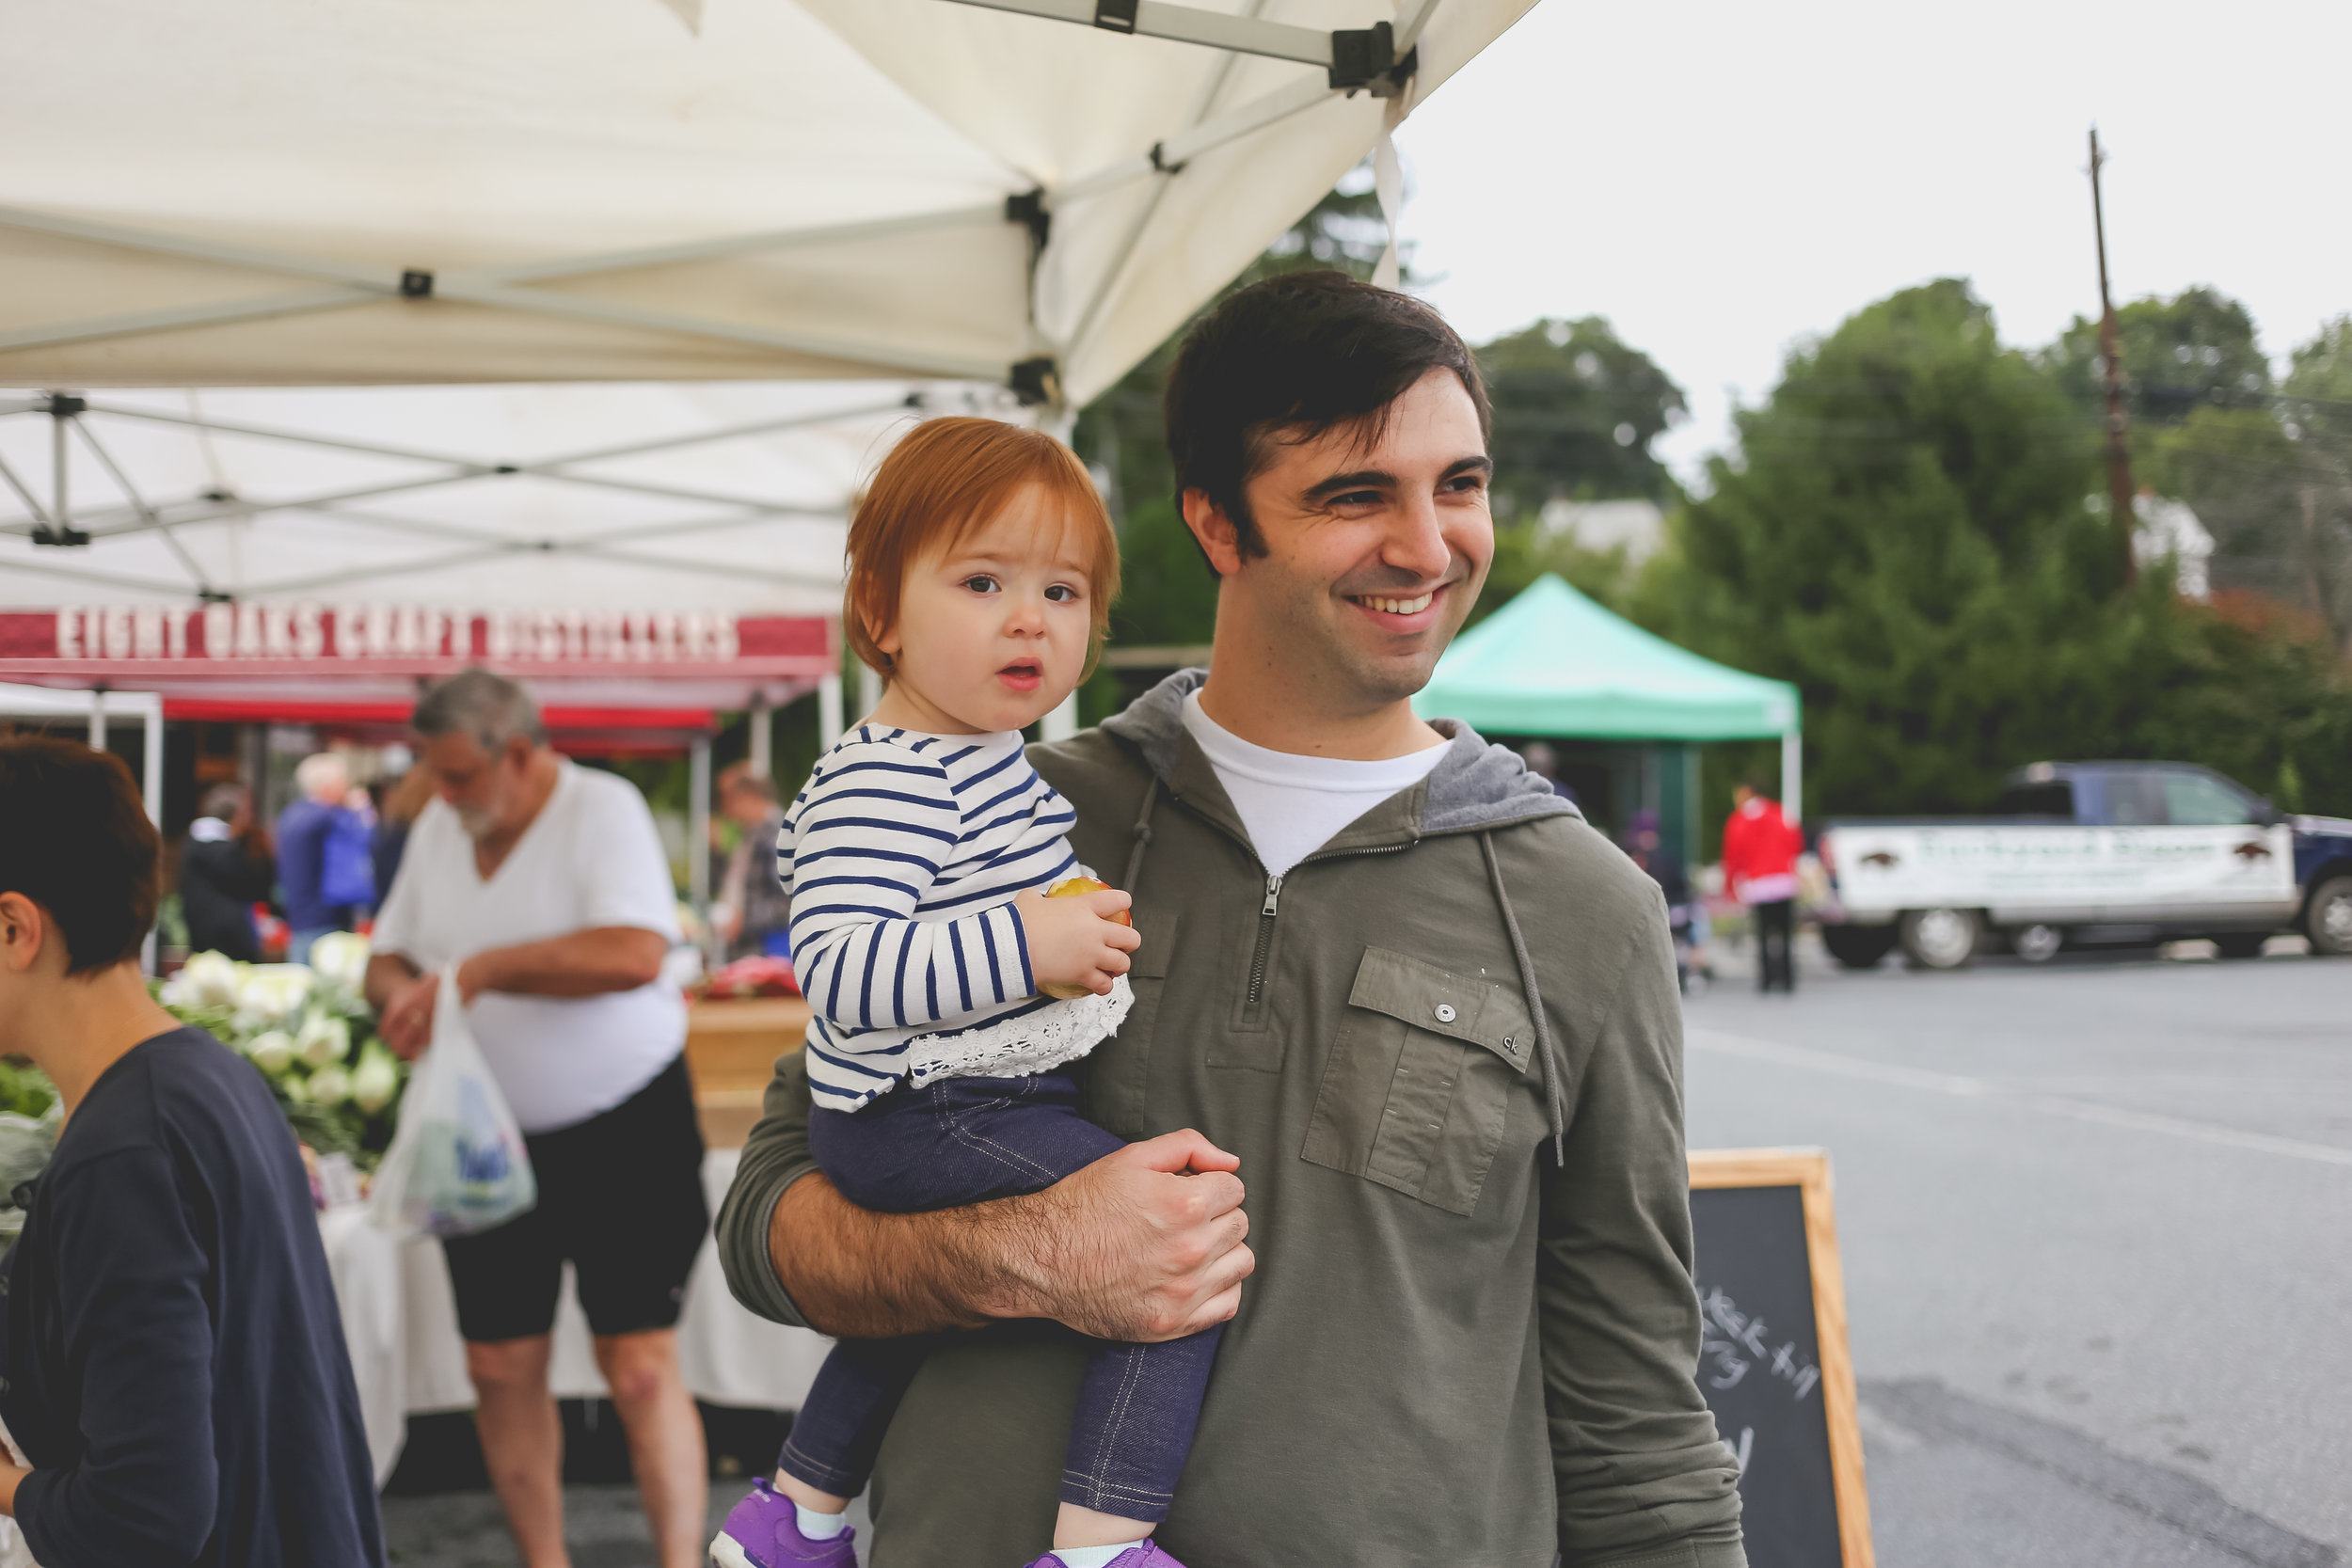 Father and daughter at the Emmaus Farmer's Market. Documentary Family Photography in Lehigh Valley, PA.